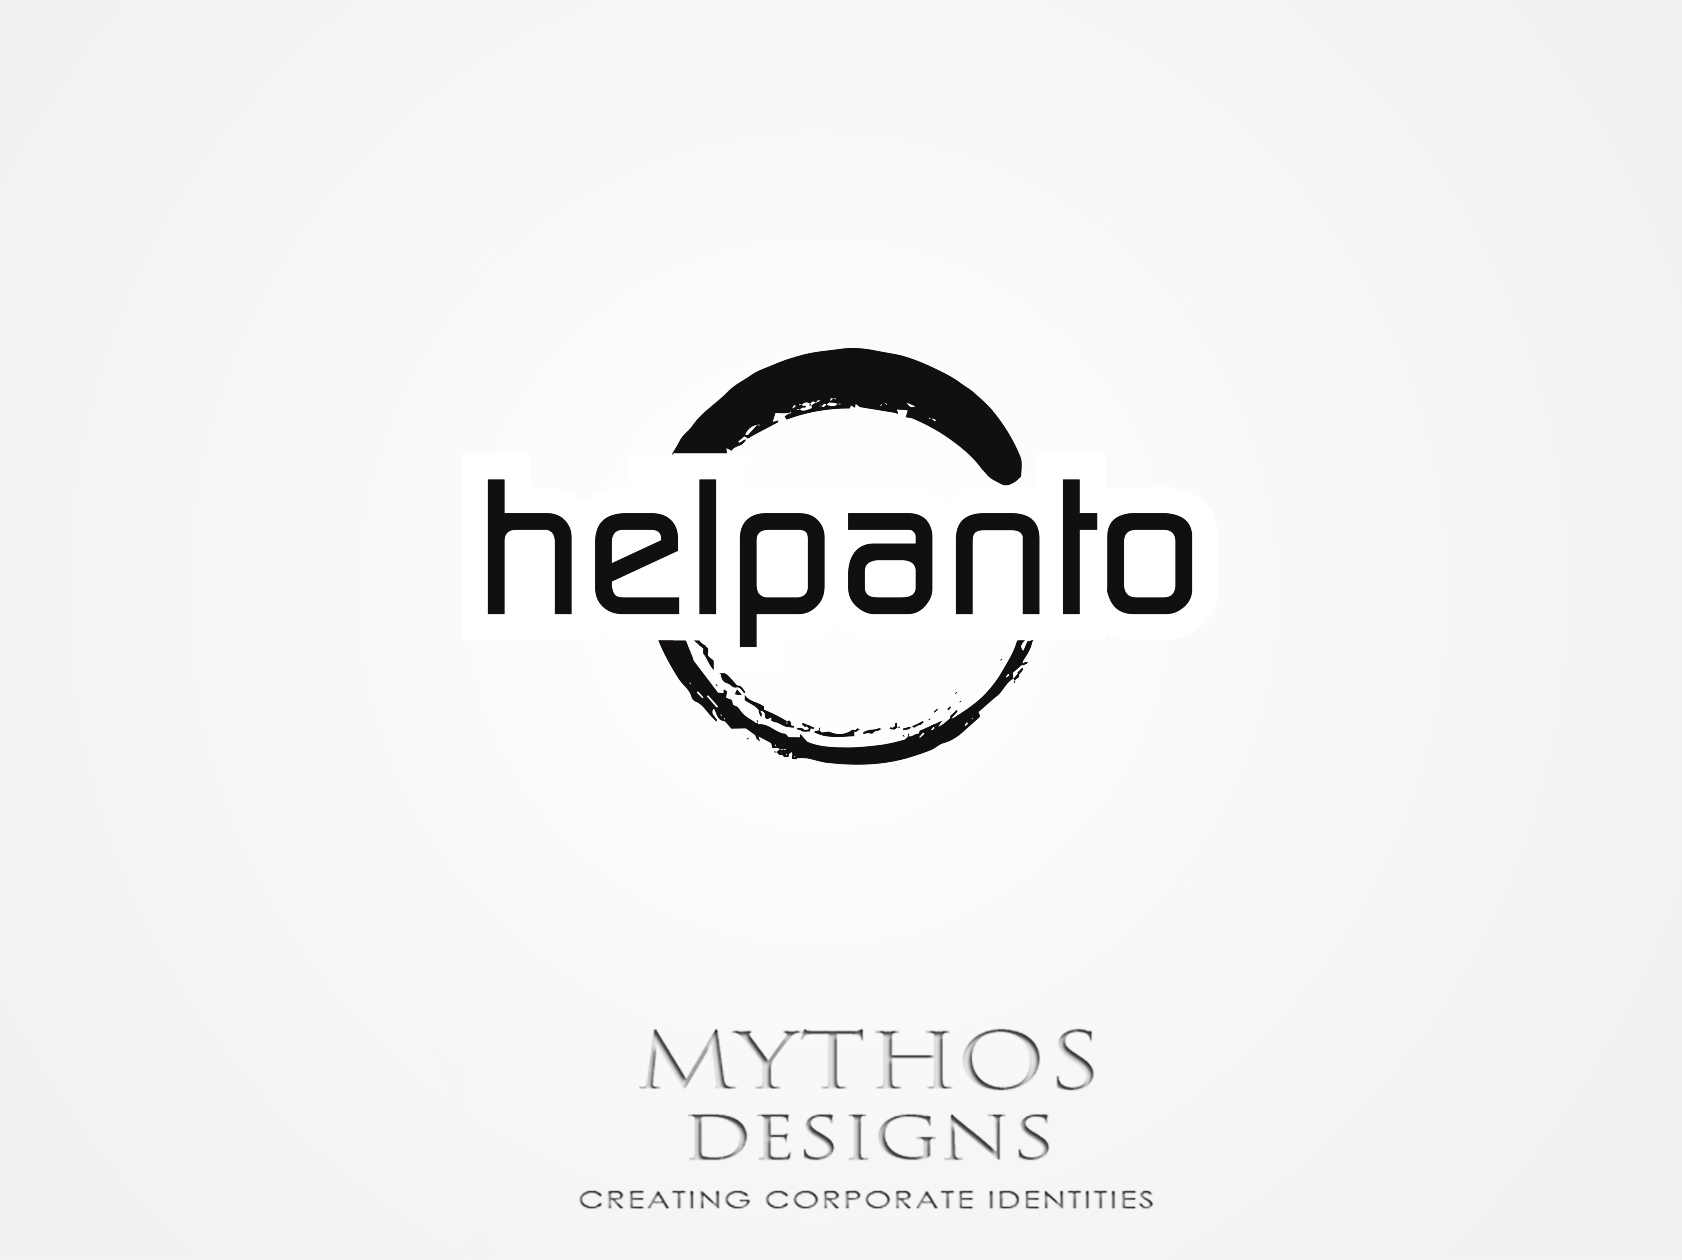 Logo Design by Mythos Designs - Entry No. 144 in the Logo Design Contest Artistic Logo Design for helpanto.